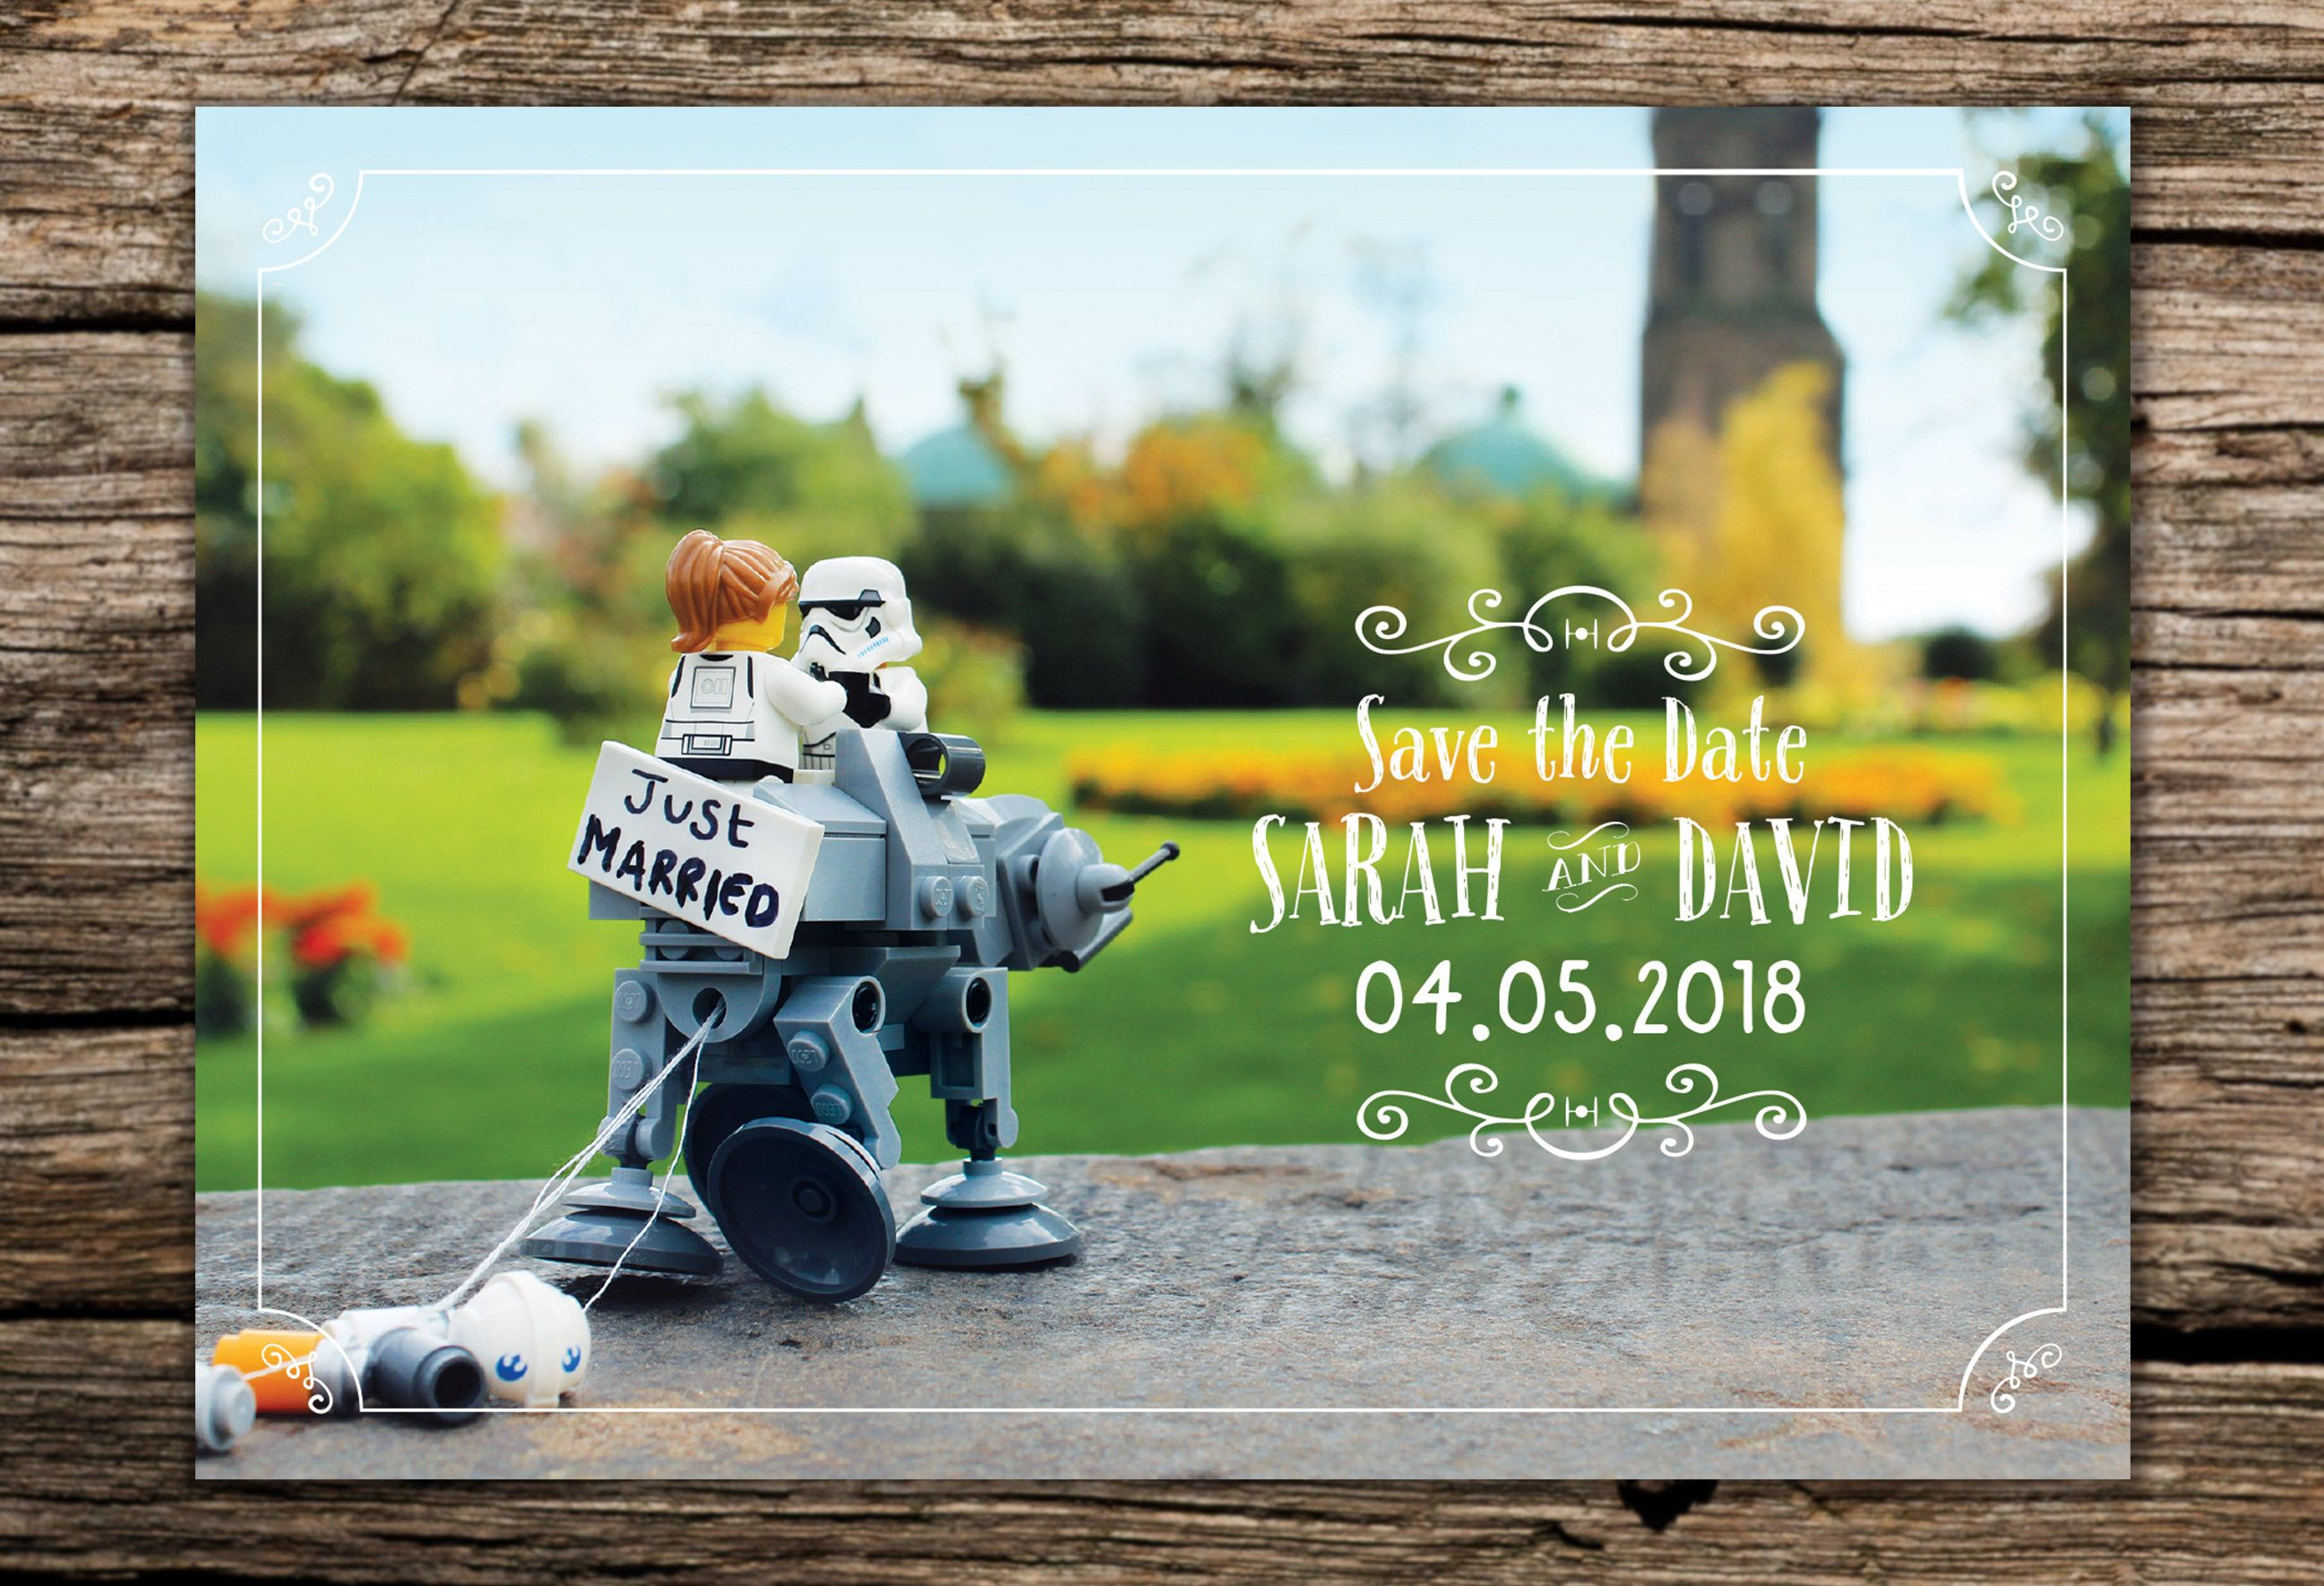 Just Married Star Wars Inspired Save The Date Card By Typo56 On